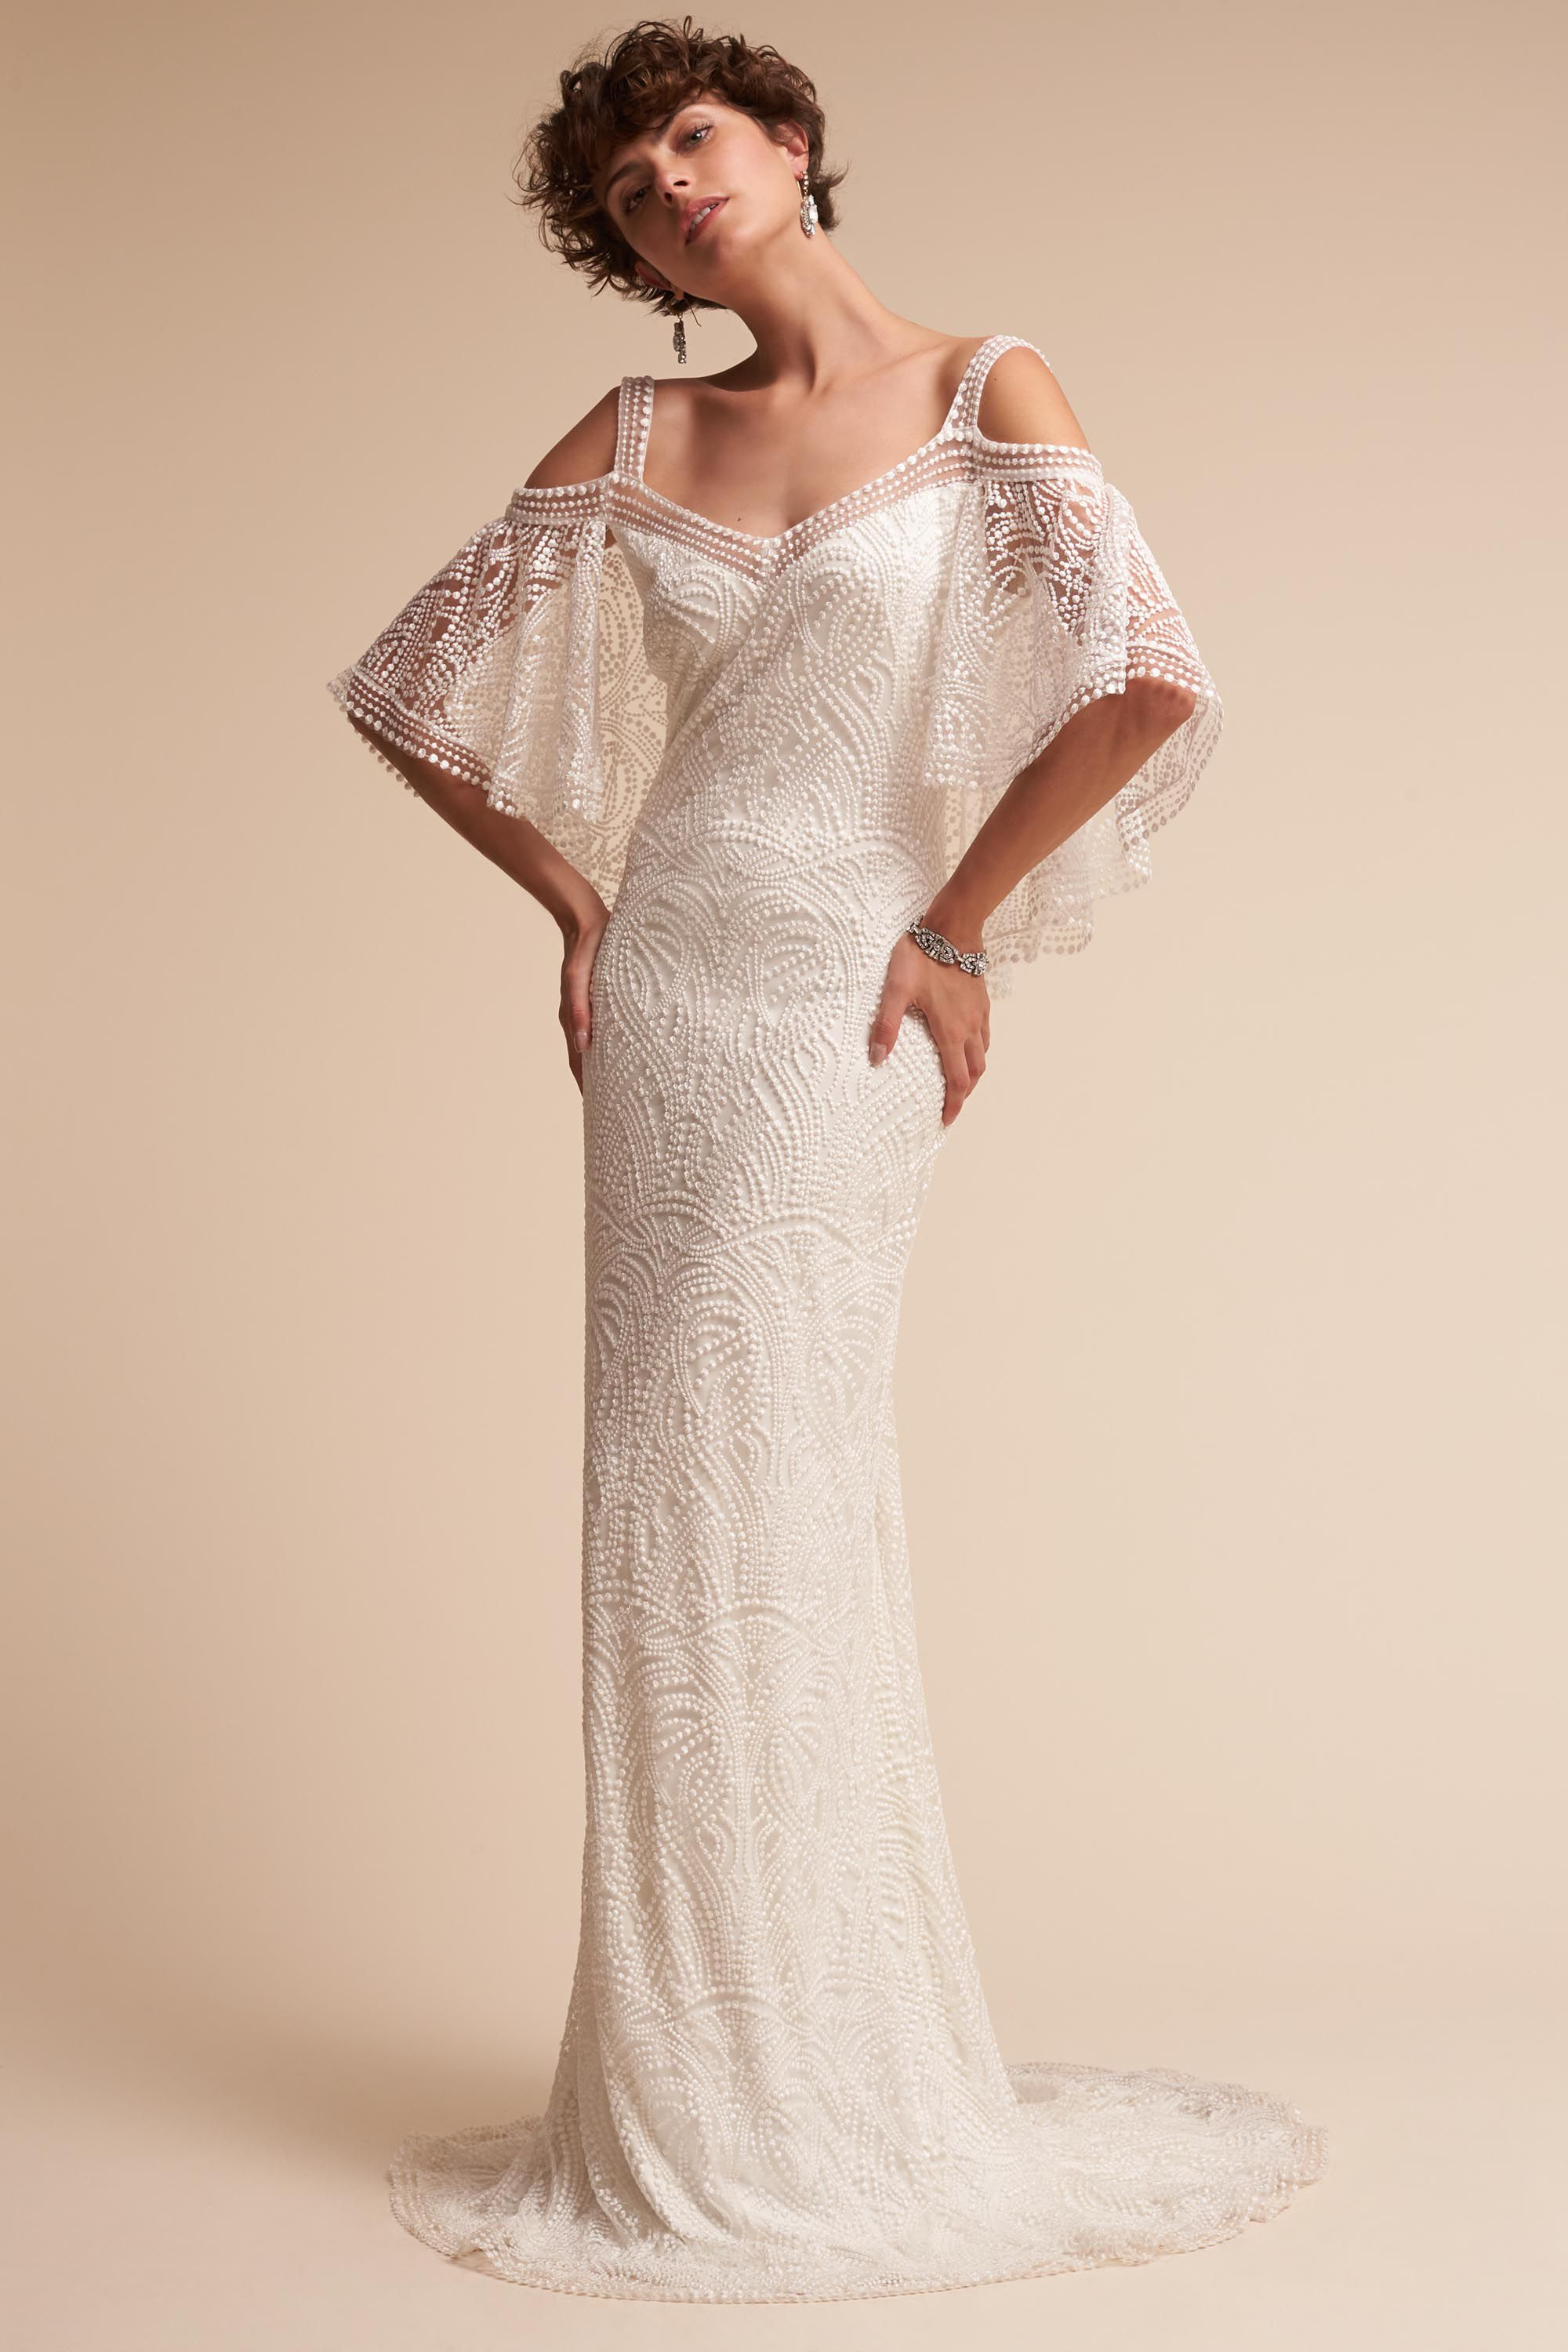 Lace with sleeves wedding dresses